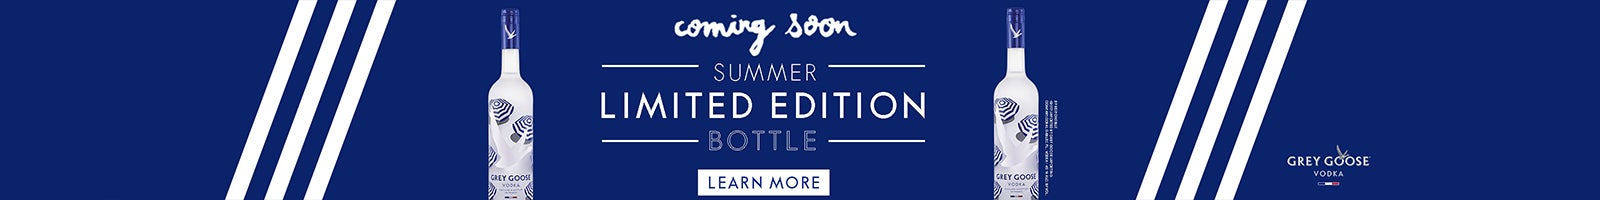 More Info for Grey Goose 1600x200-bottle_rev.jpg